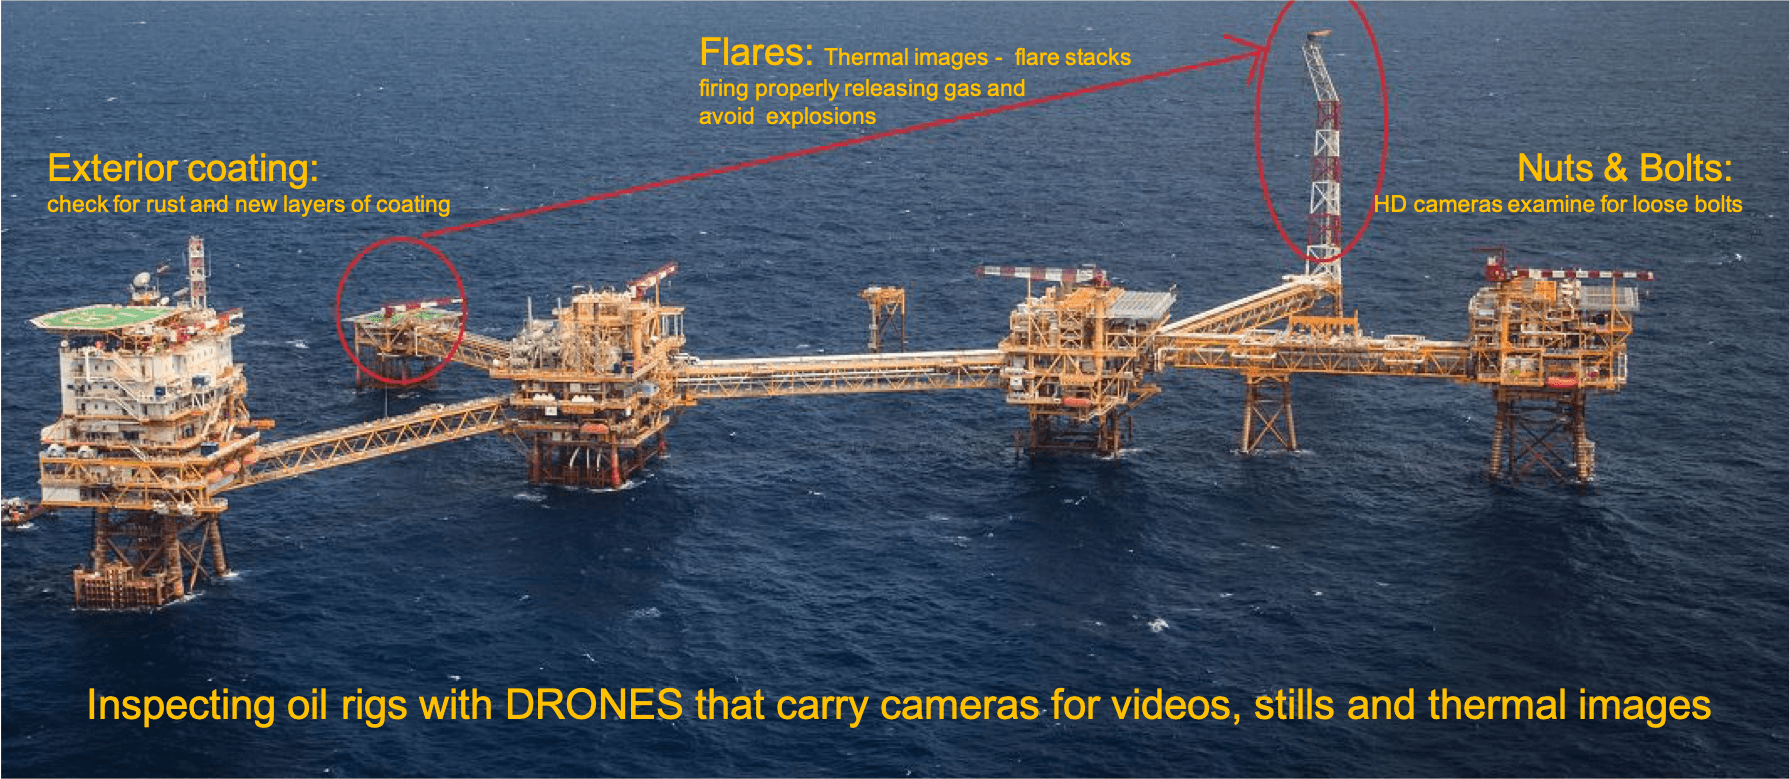 Offshore oilrig inspections with Drones (Main Areas)